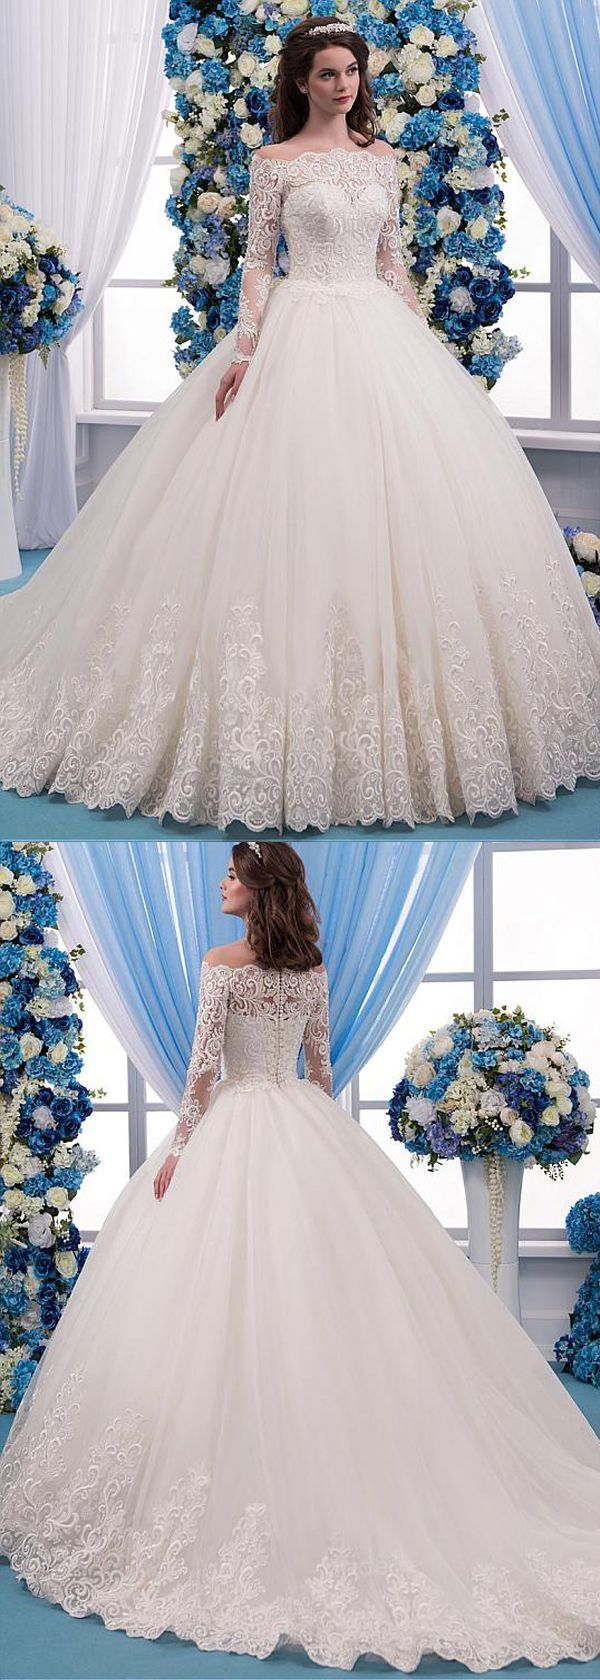 Romantic Tulle Bateau Notch Ball Gown Wedding Dress with Lace Appliques & …